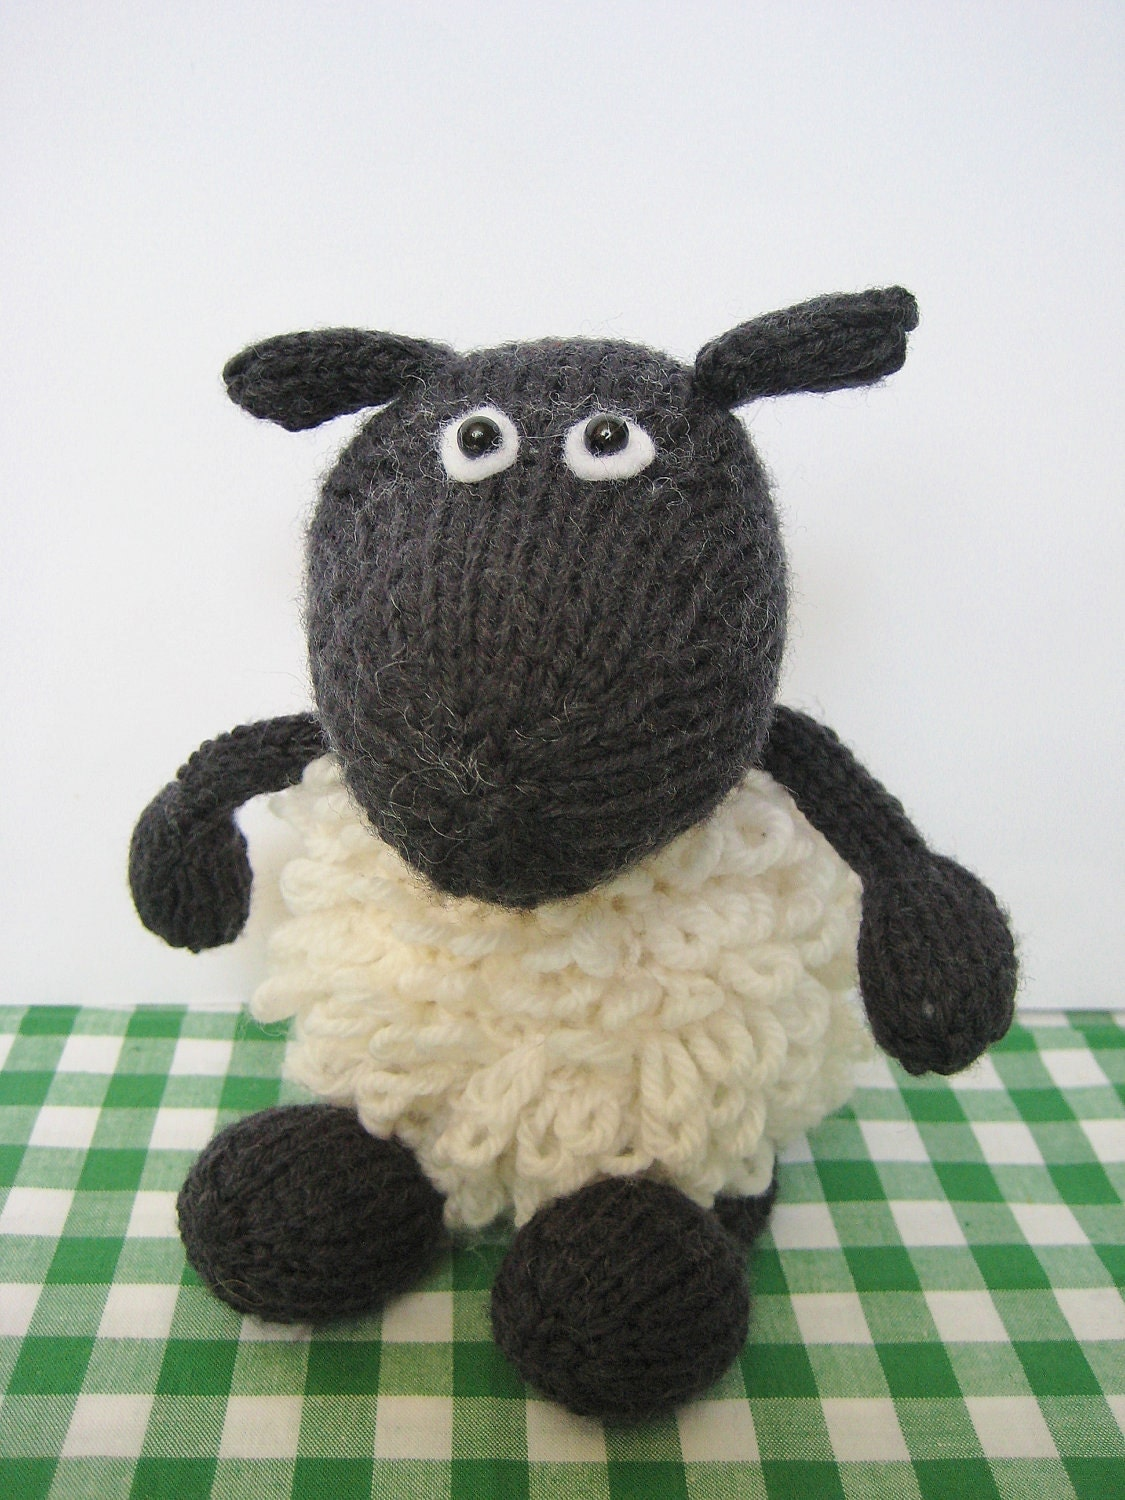 Plymouth Yarns Free Knitting Patterns : Loopy the Sheep toy knitting pattern by fluffandfuzz on Etsy